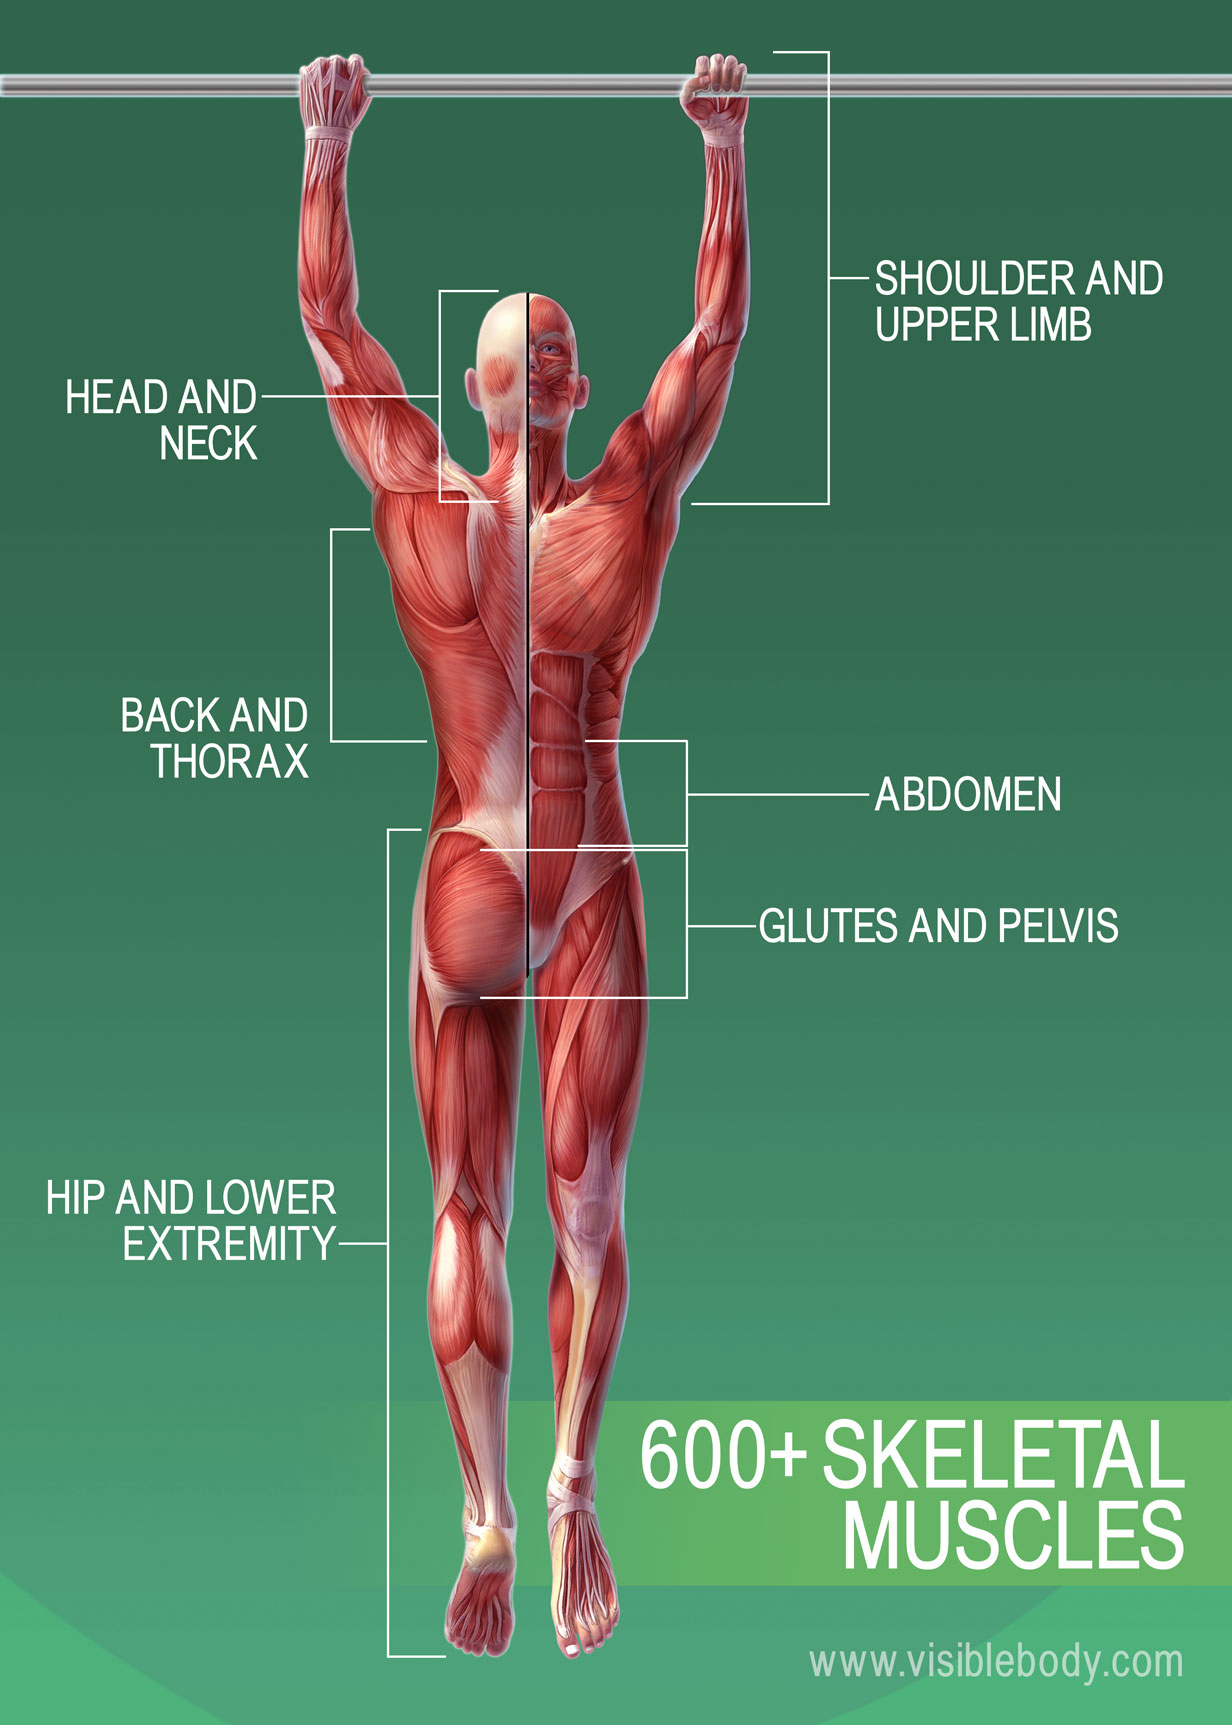 Muscular system | Learn Muscular Anatomy